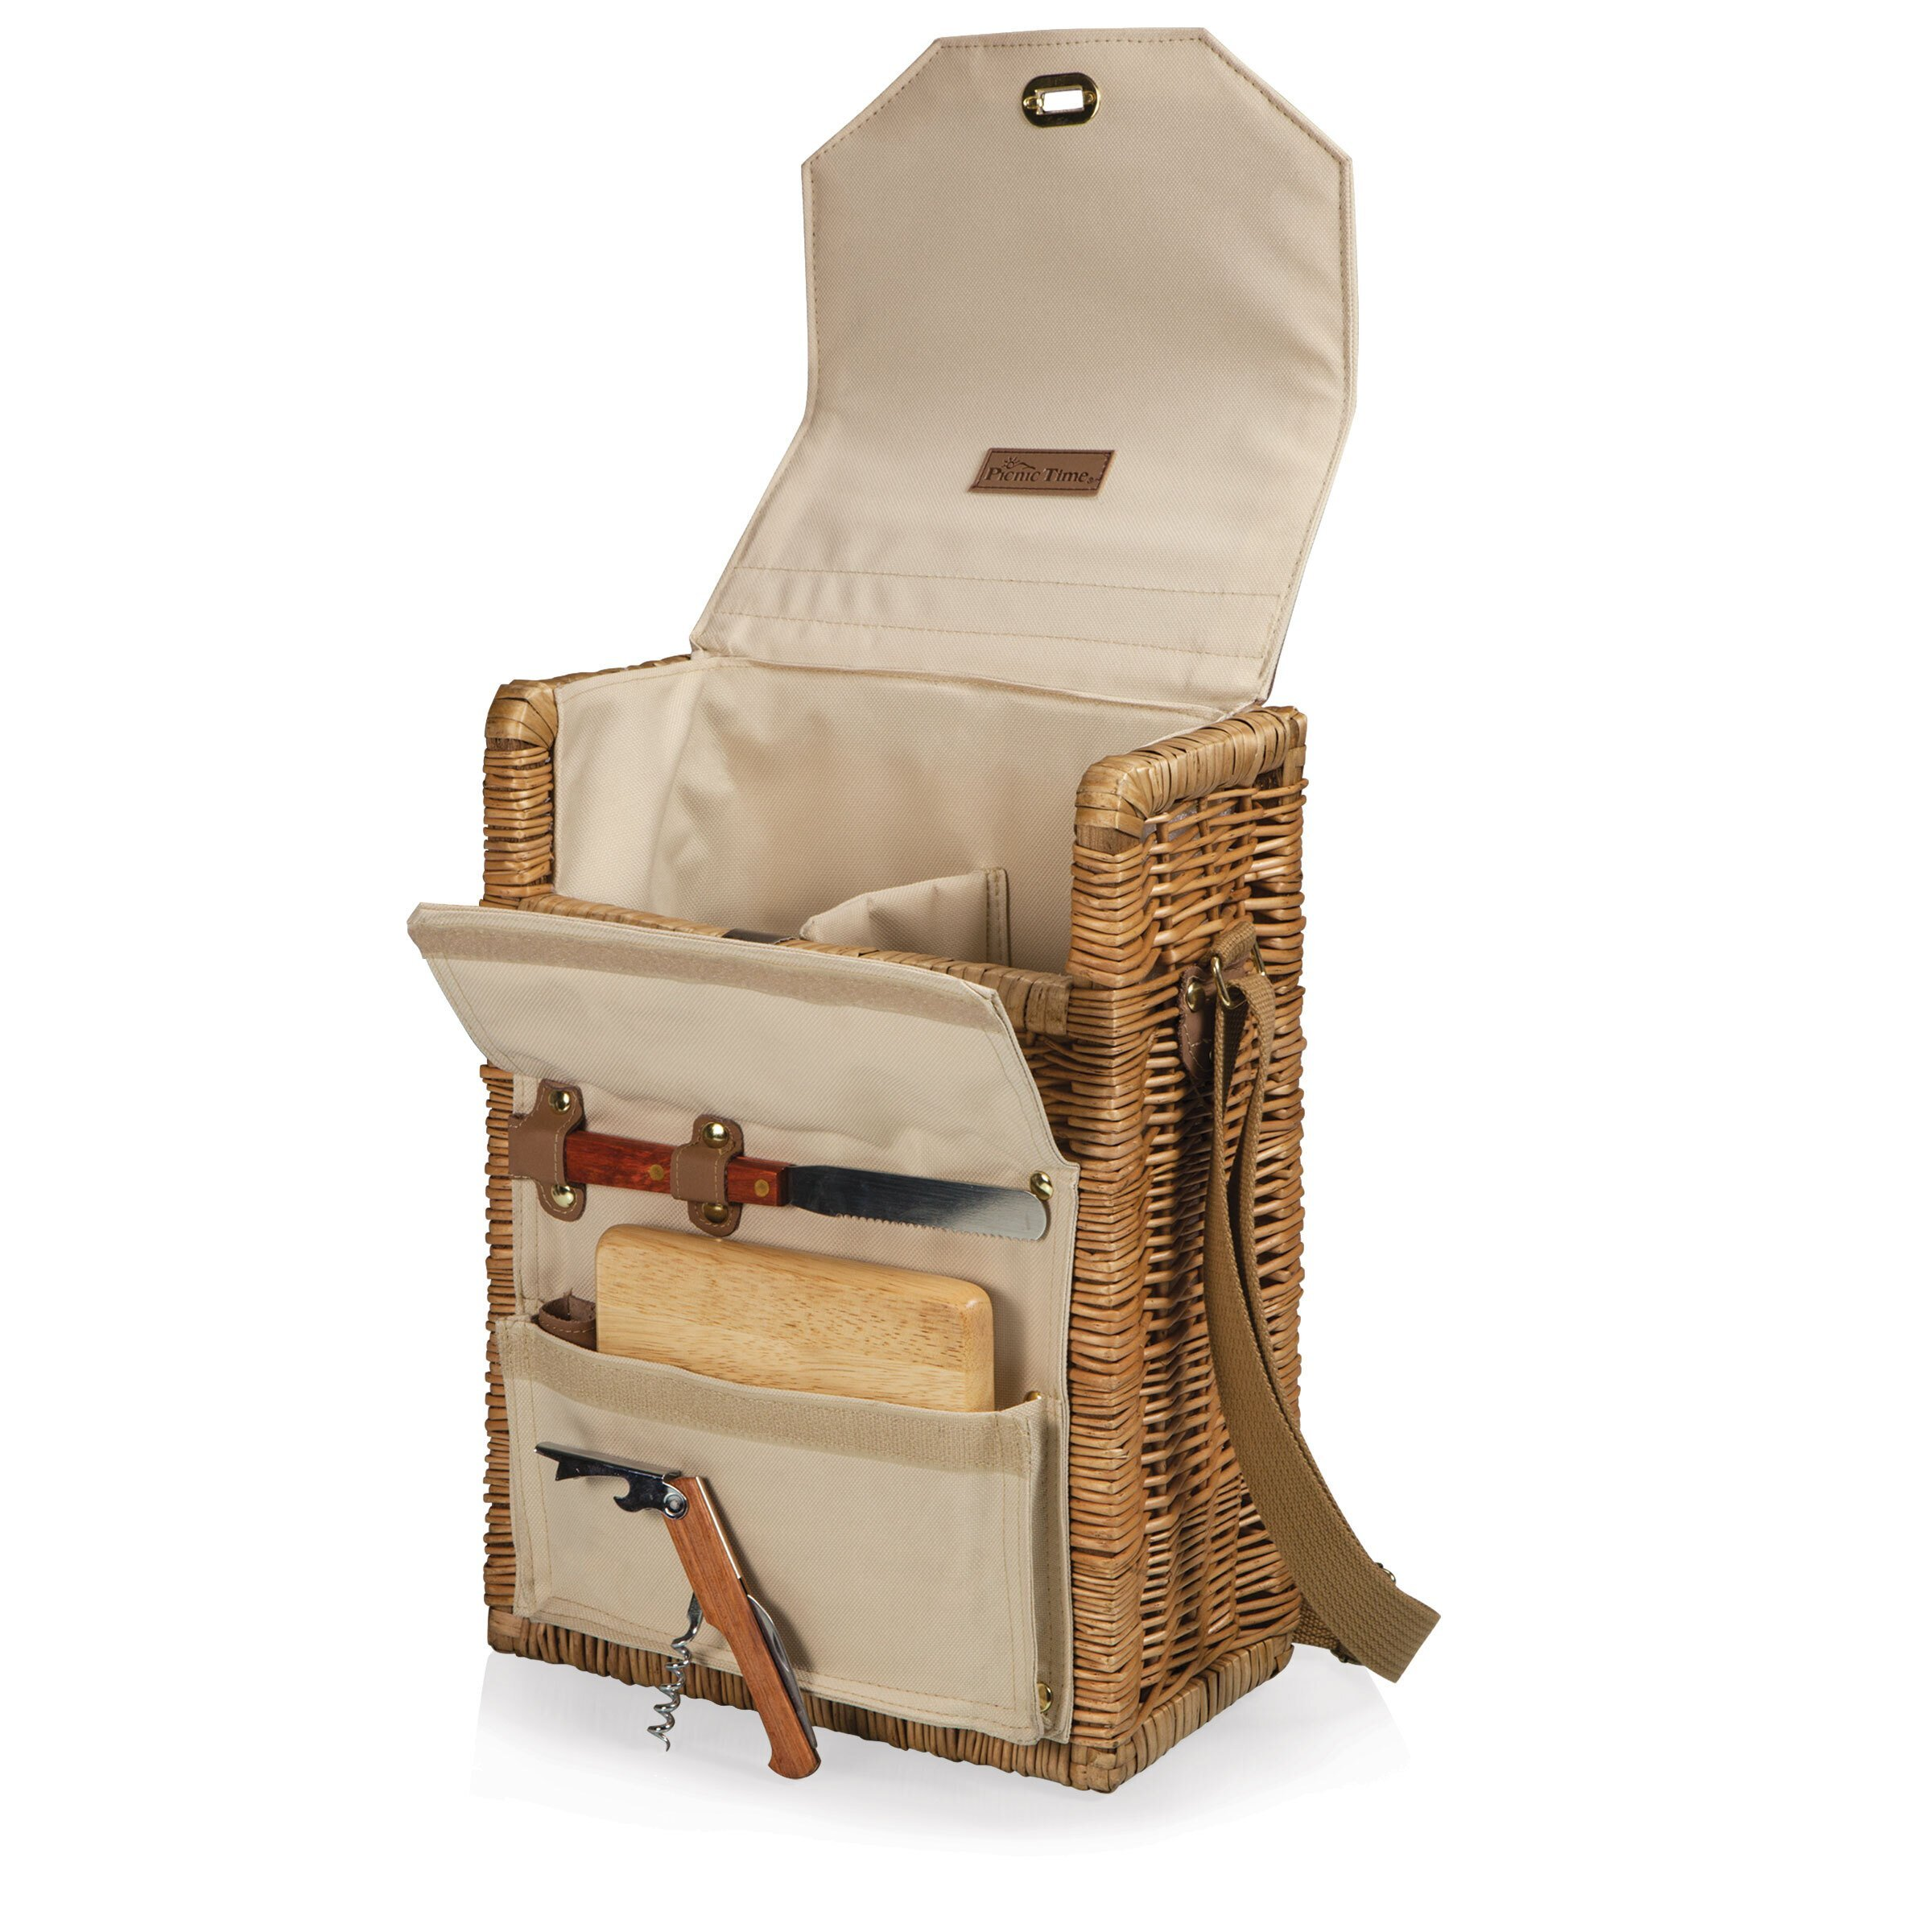 Corsica Two-Bottle Wine Basket & Corkscrew Set